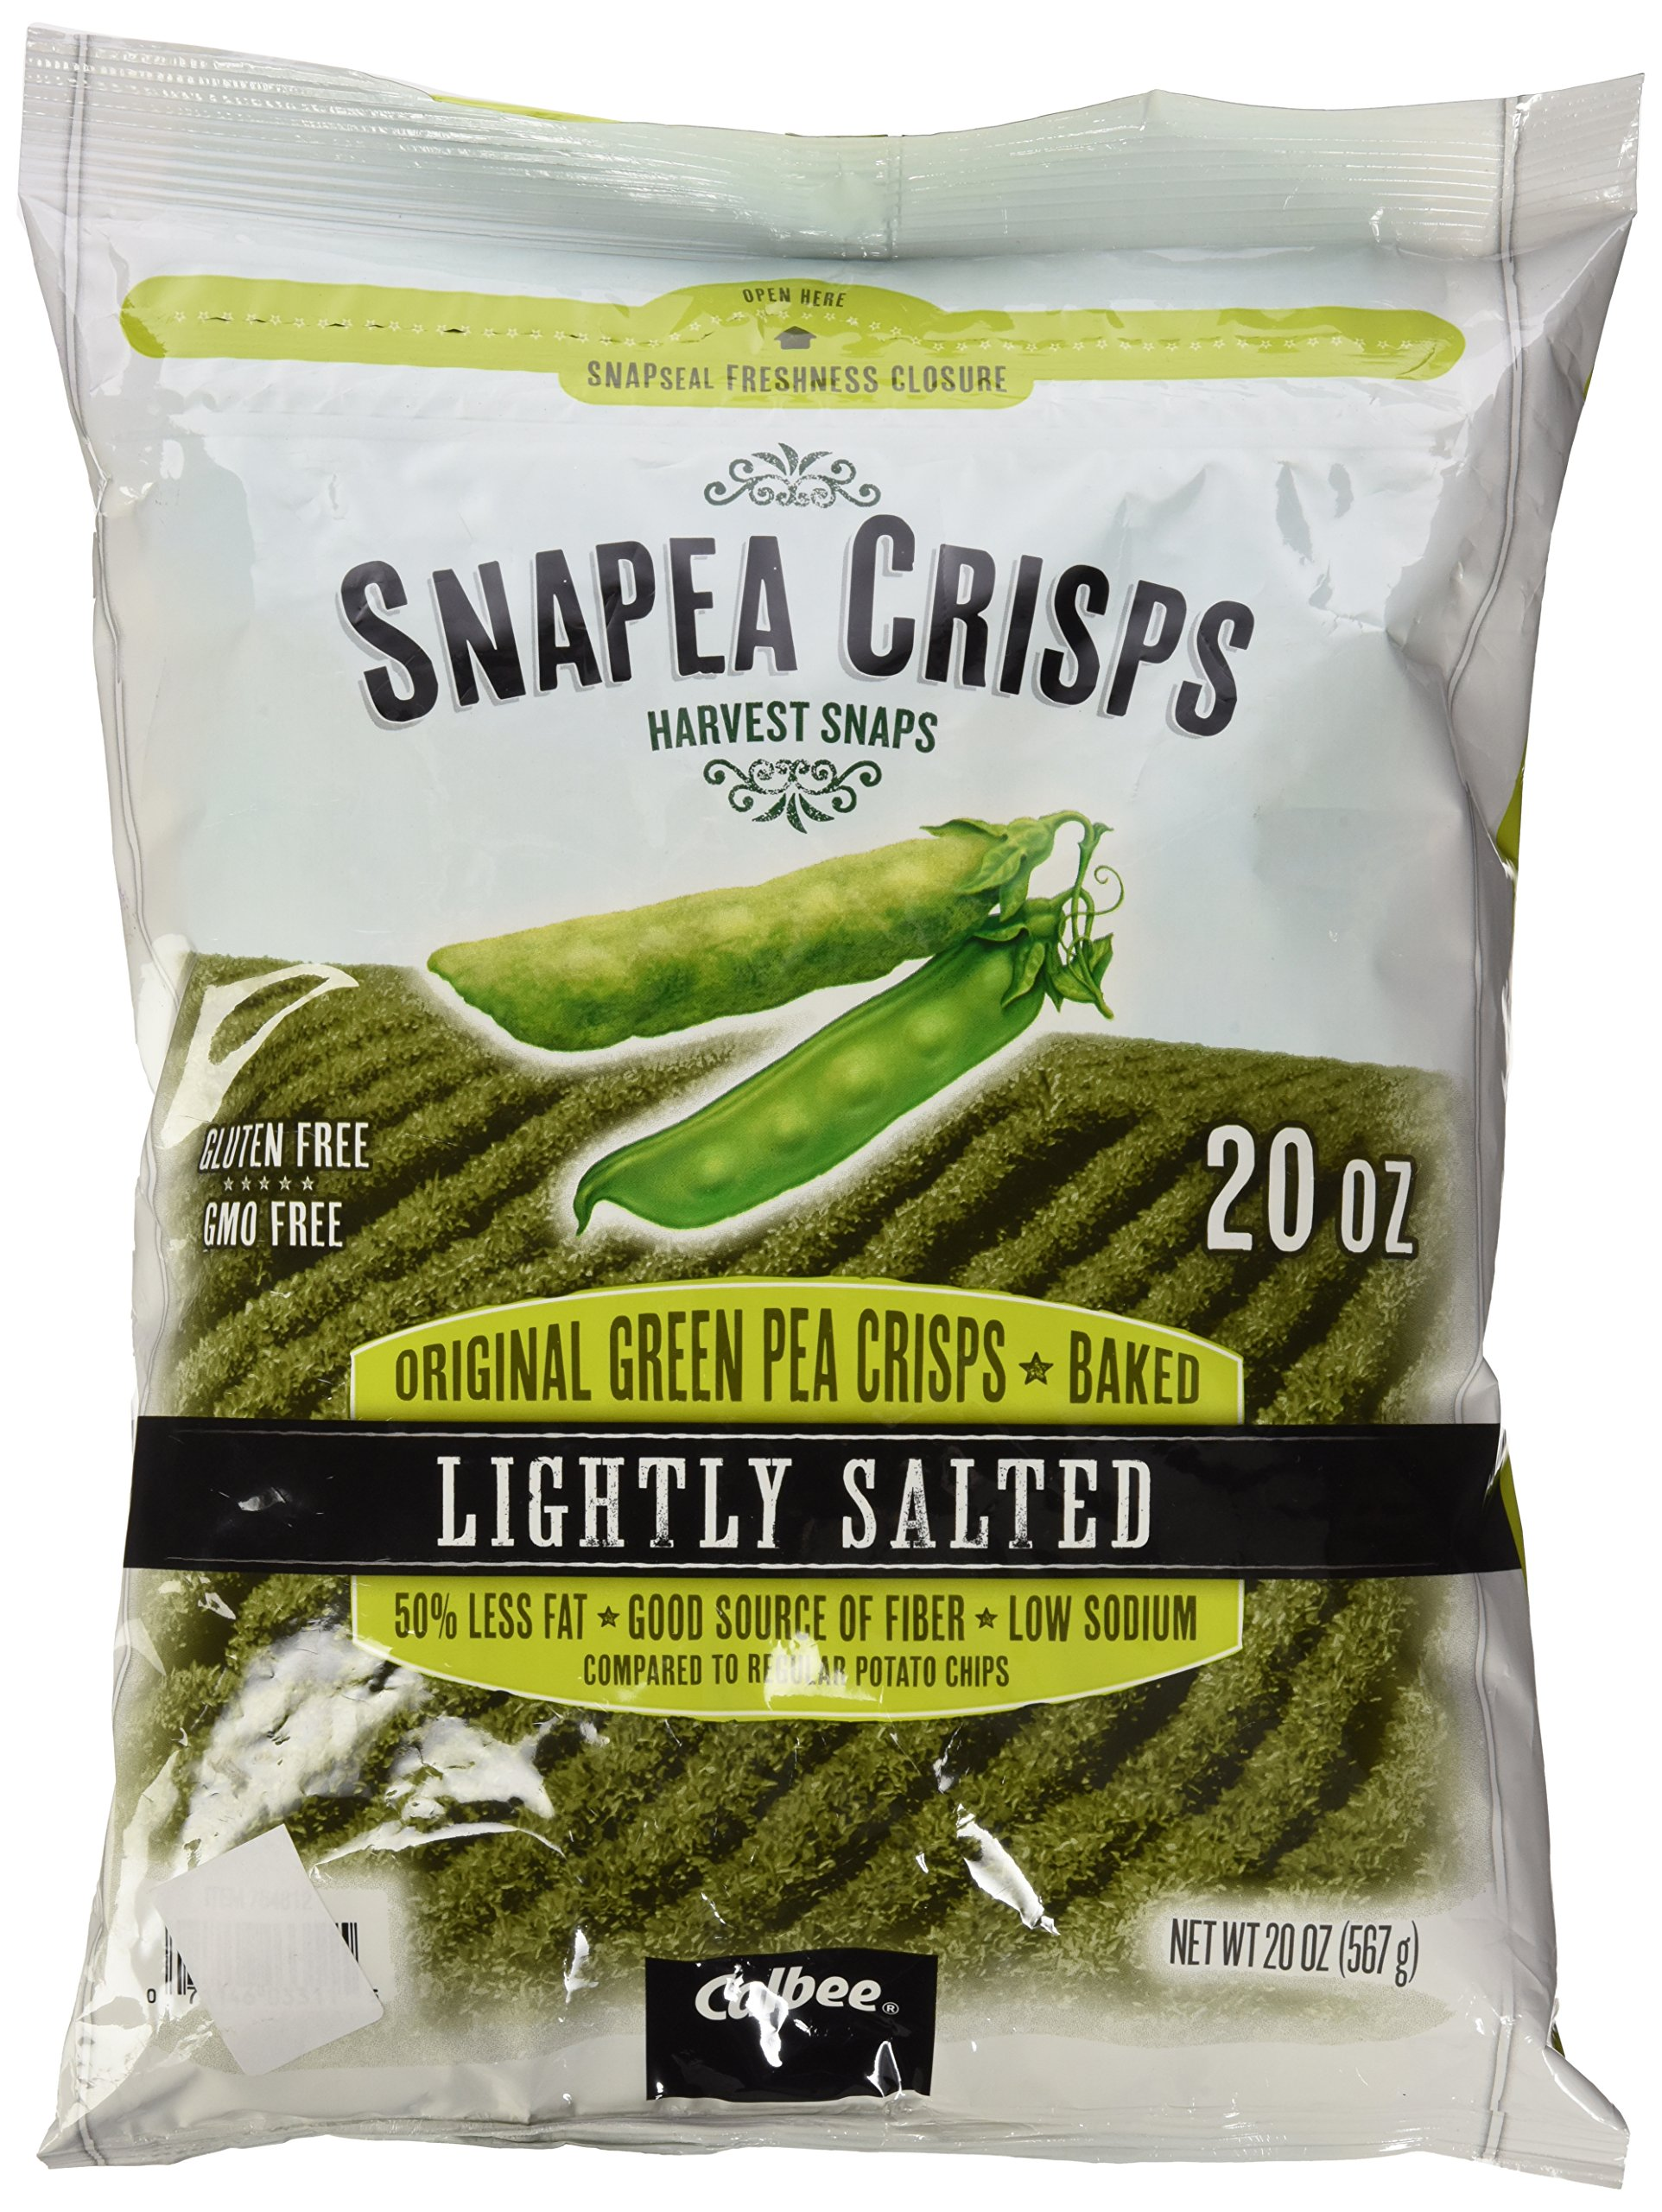 Green peas chips